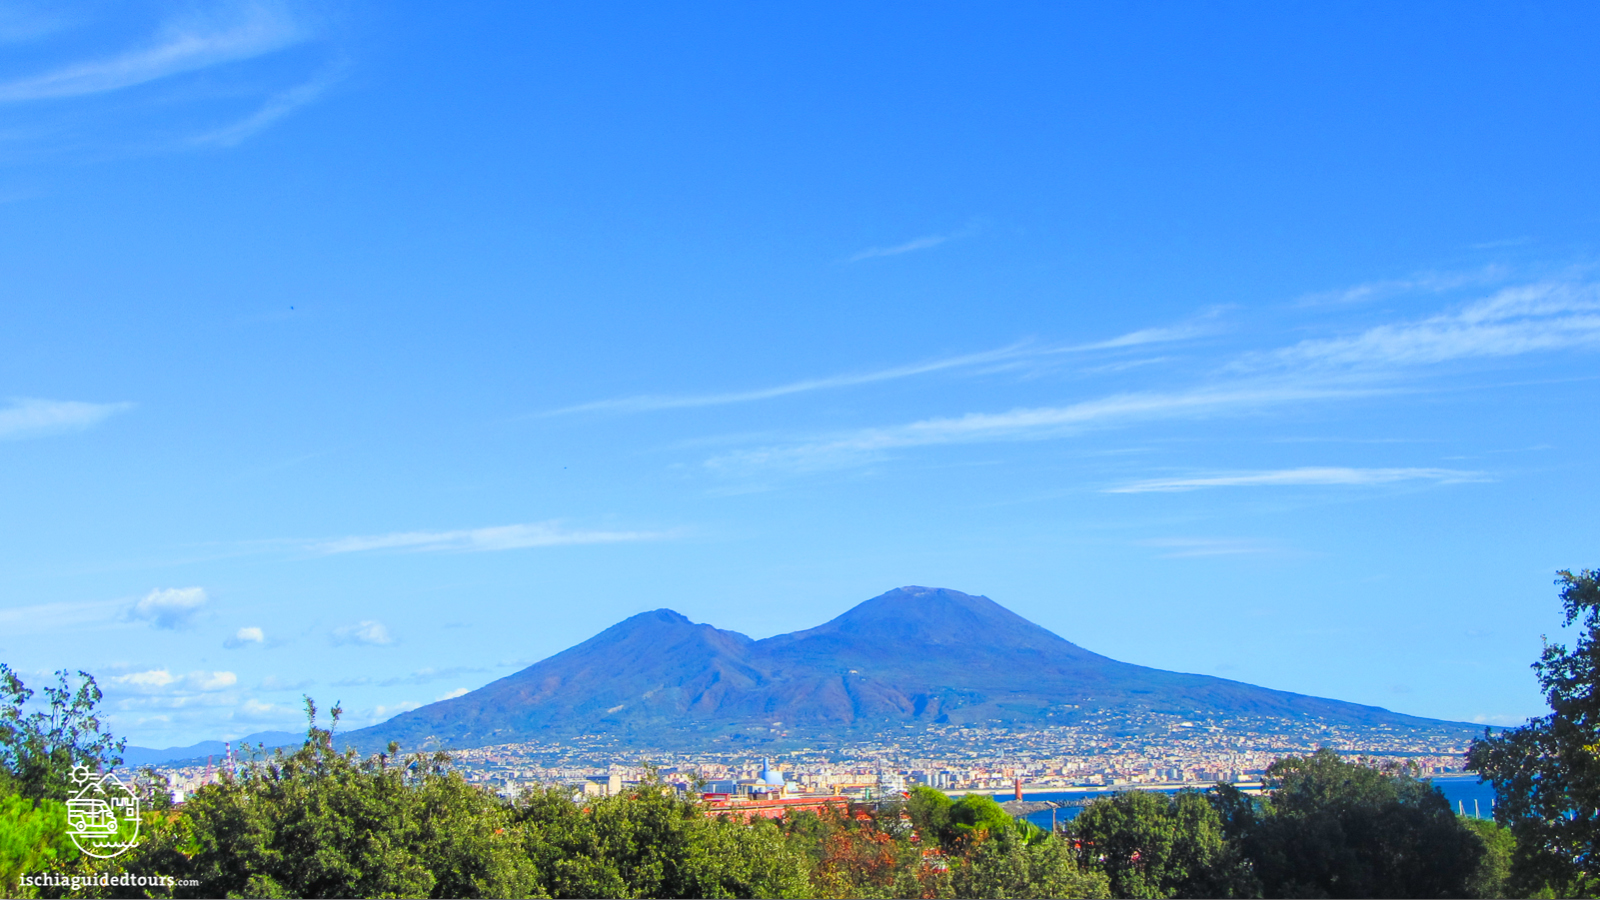 Naples, Naples walking tour, Vesuvius, Napoli tours, Tour of Naples, Guided tour of Naples, Mount Vesuvius, Naples guided tours, Pompeii, Naples Greek city, Naples pizza, Naples volcano, Naples excursion, what to see in Naples, Visit Naples, day trip Naples, Naples museums, Naples city, Naples port, Naples Ischia